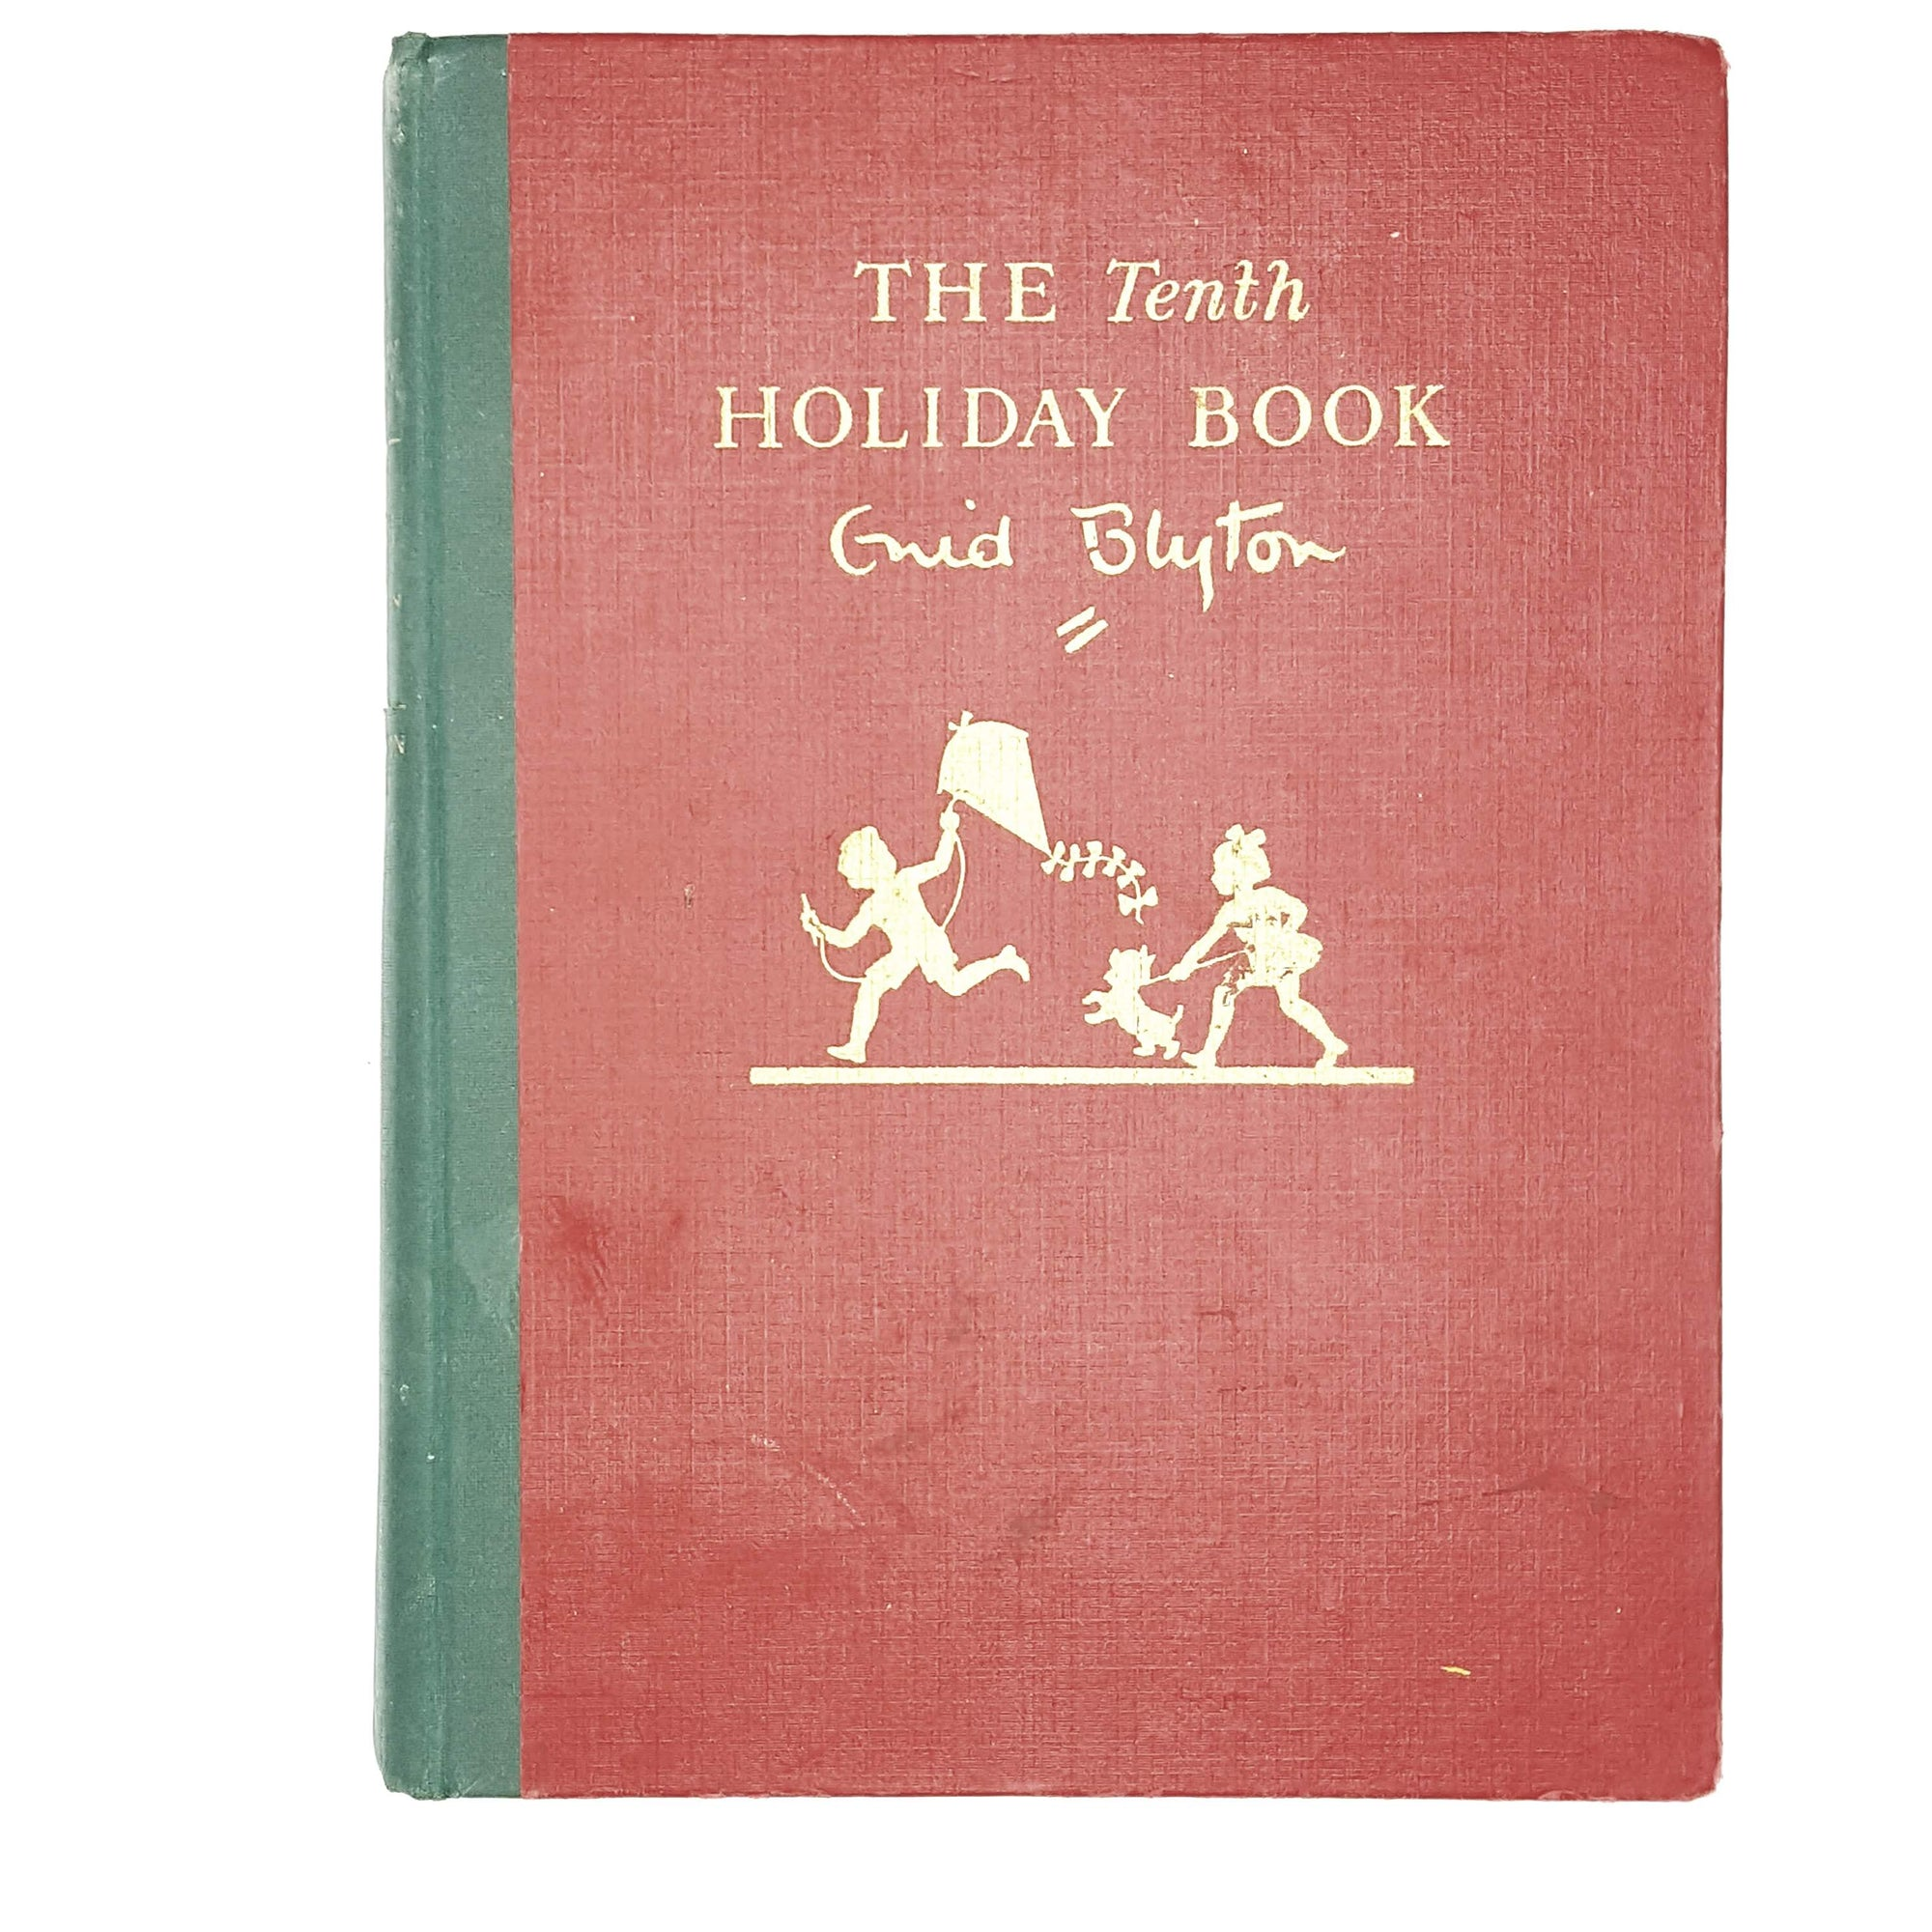 Enid Blyton's The Tenth Holiday Book